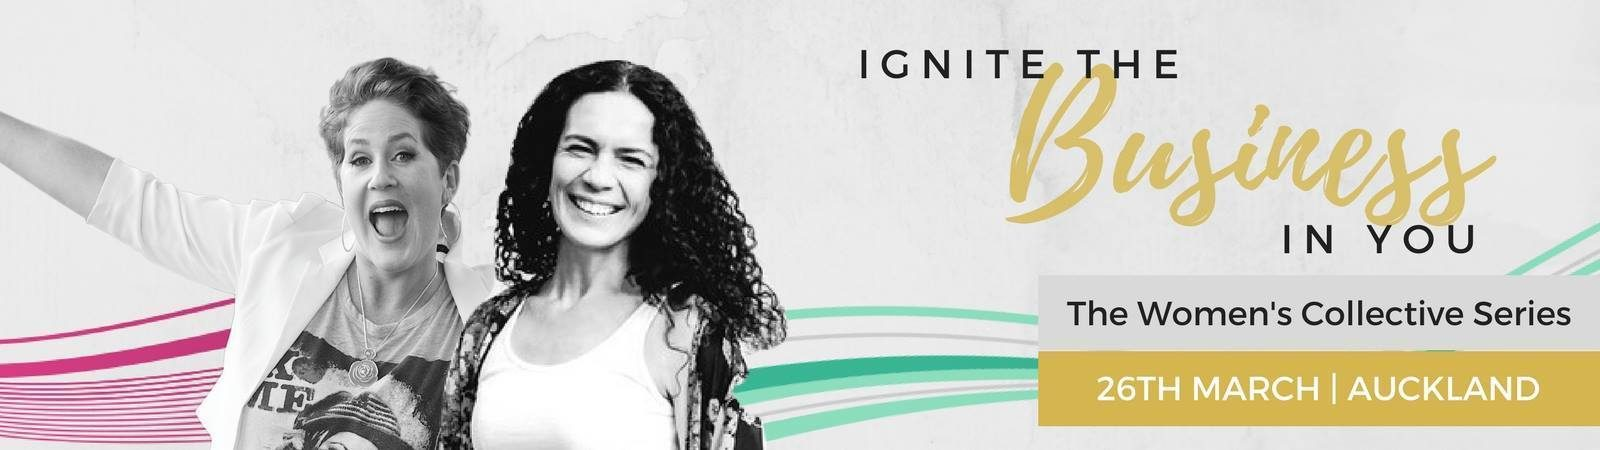 Ignite the business in you